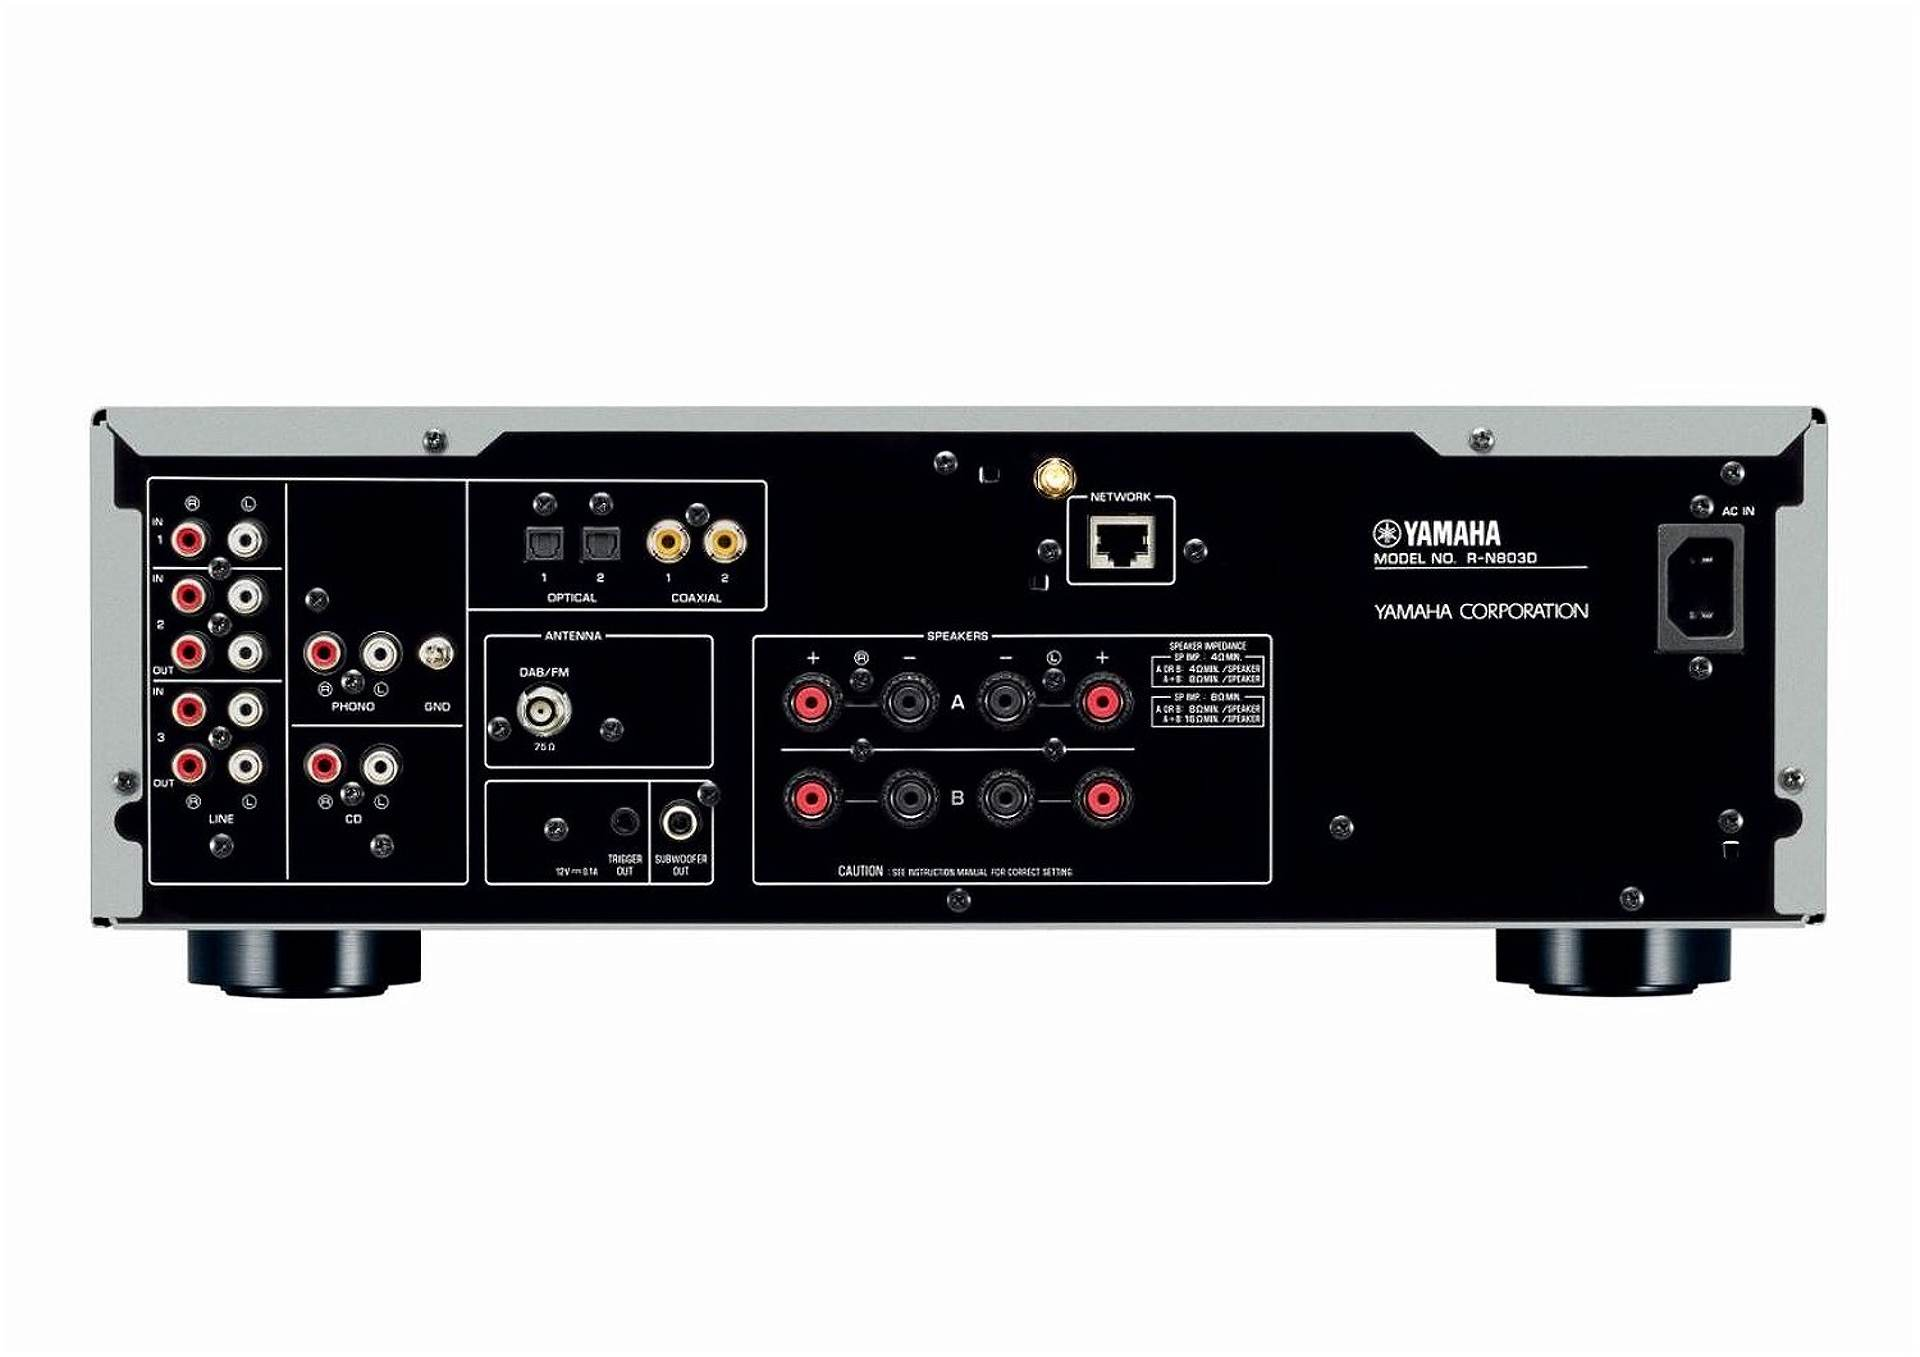 Product moreover Watch as well Harman Kardon HK 3270 Stereo Receiver Mit 2x150W  1512 in addition A 50 moreover 85660 Bw cdm 1nt cherrywood loudspeakers. on teac stereo